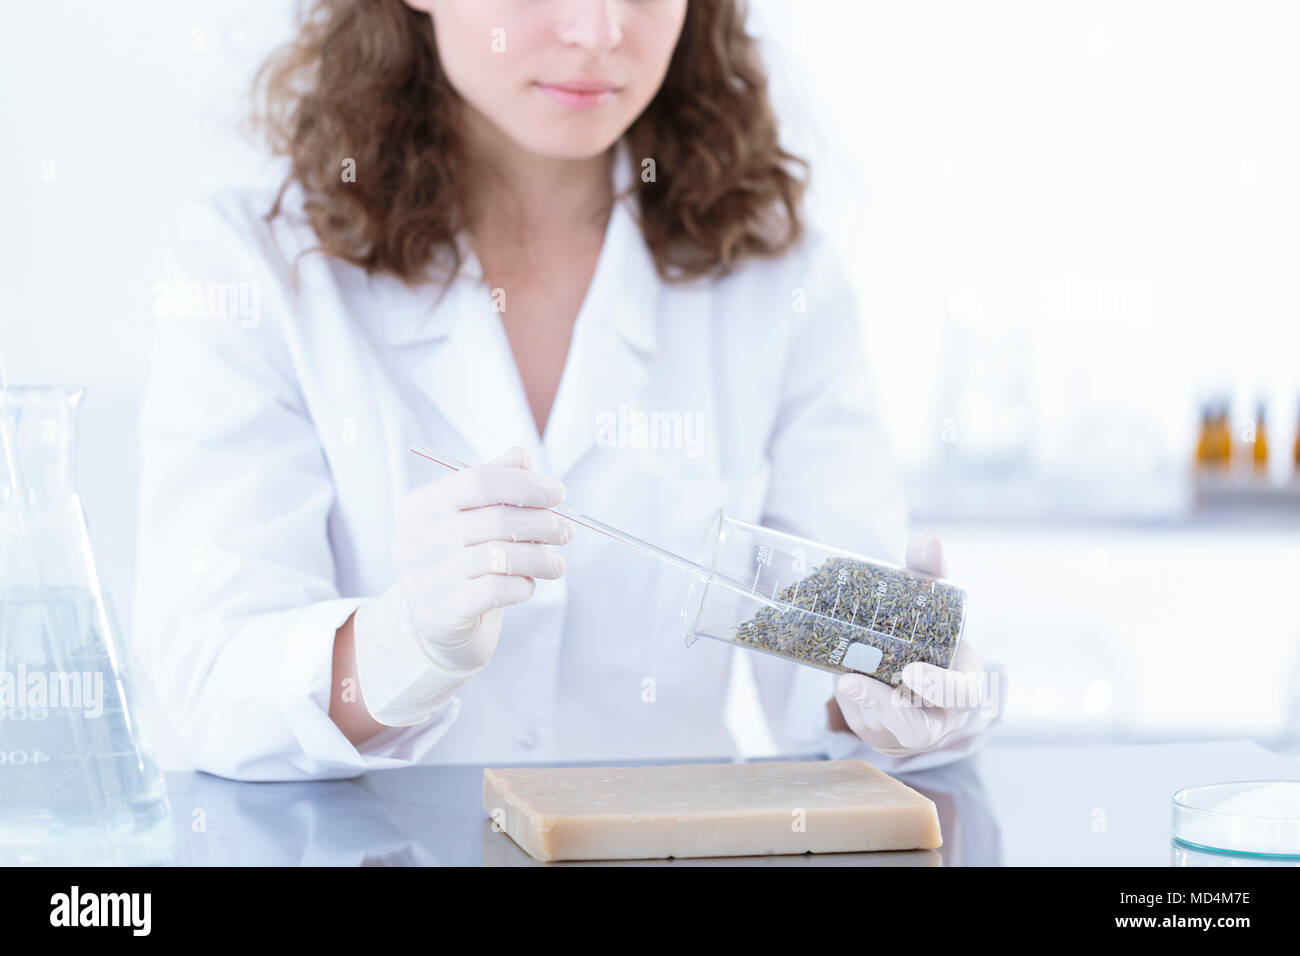 Chemist in white uniform testing herbs during a laboratory analysis - Stock Image